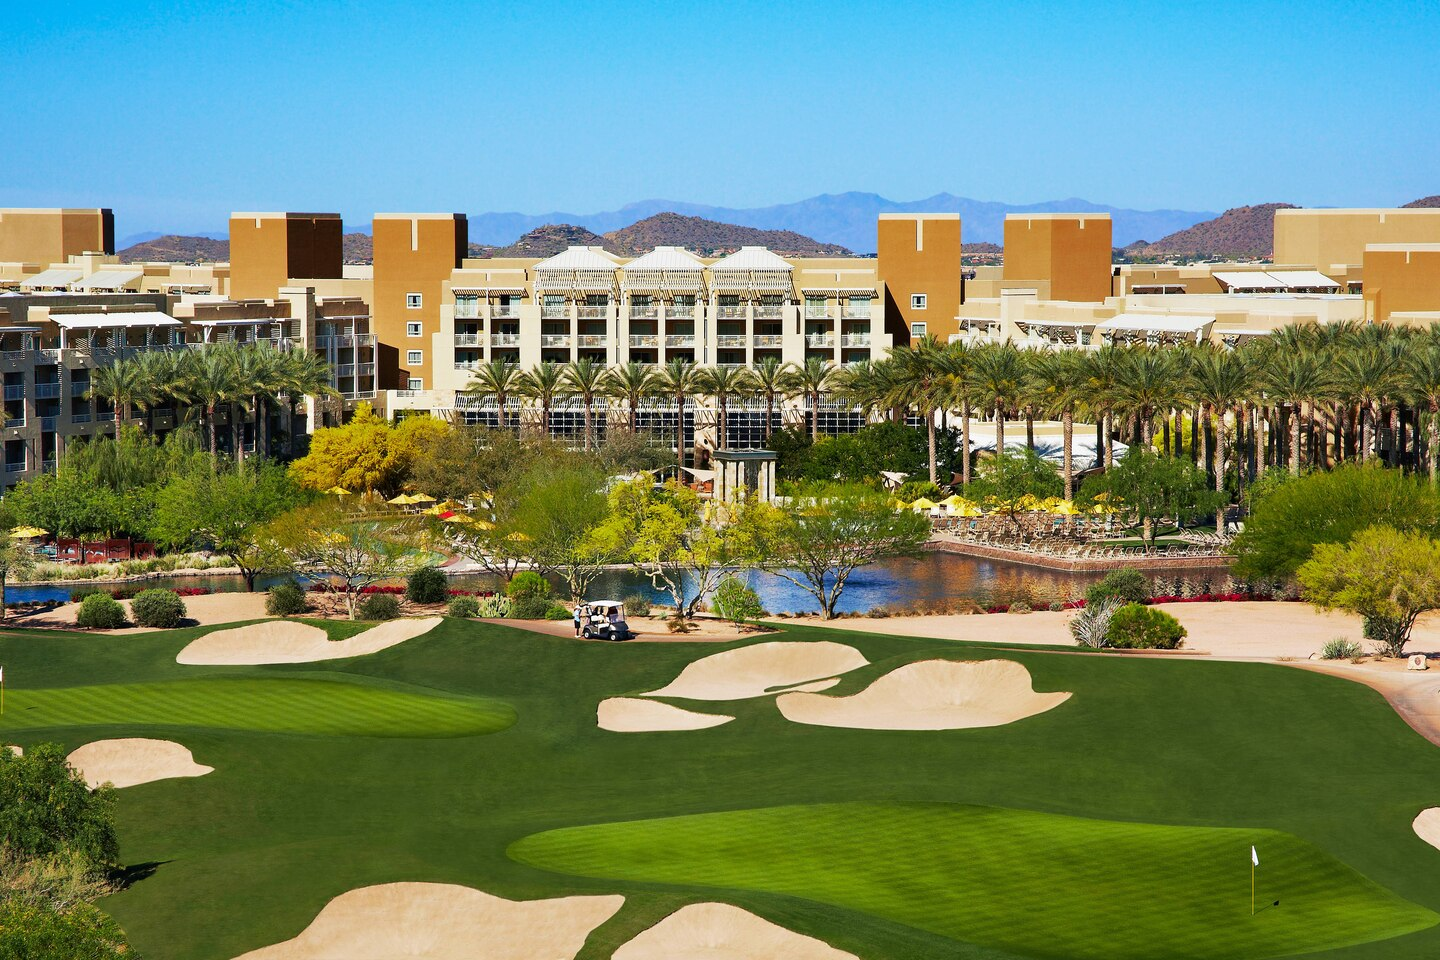 Photo of JW Marriott Phoenix Desert Ridge Hotel and Spa. Hotel is surrounded by trees and bushes, and golf course is in the foreground.